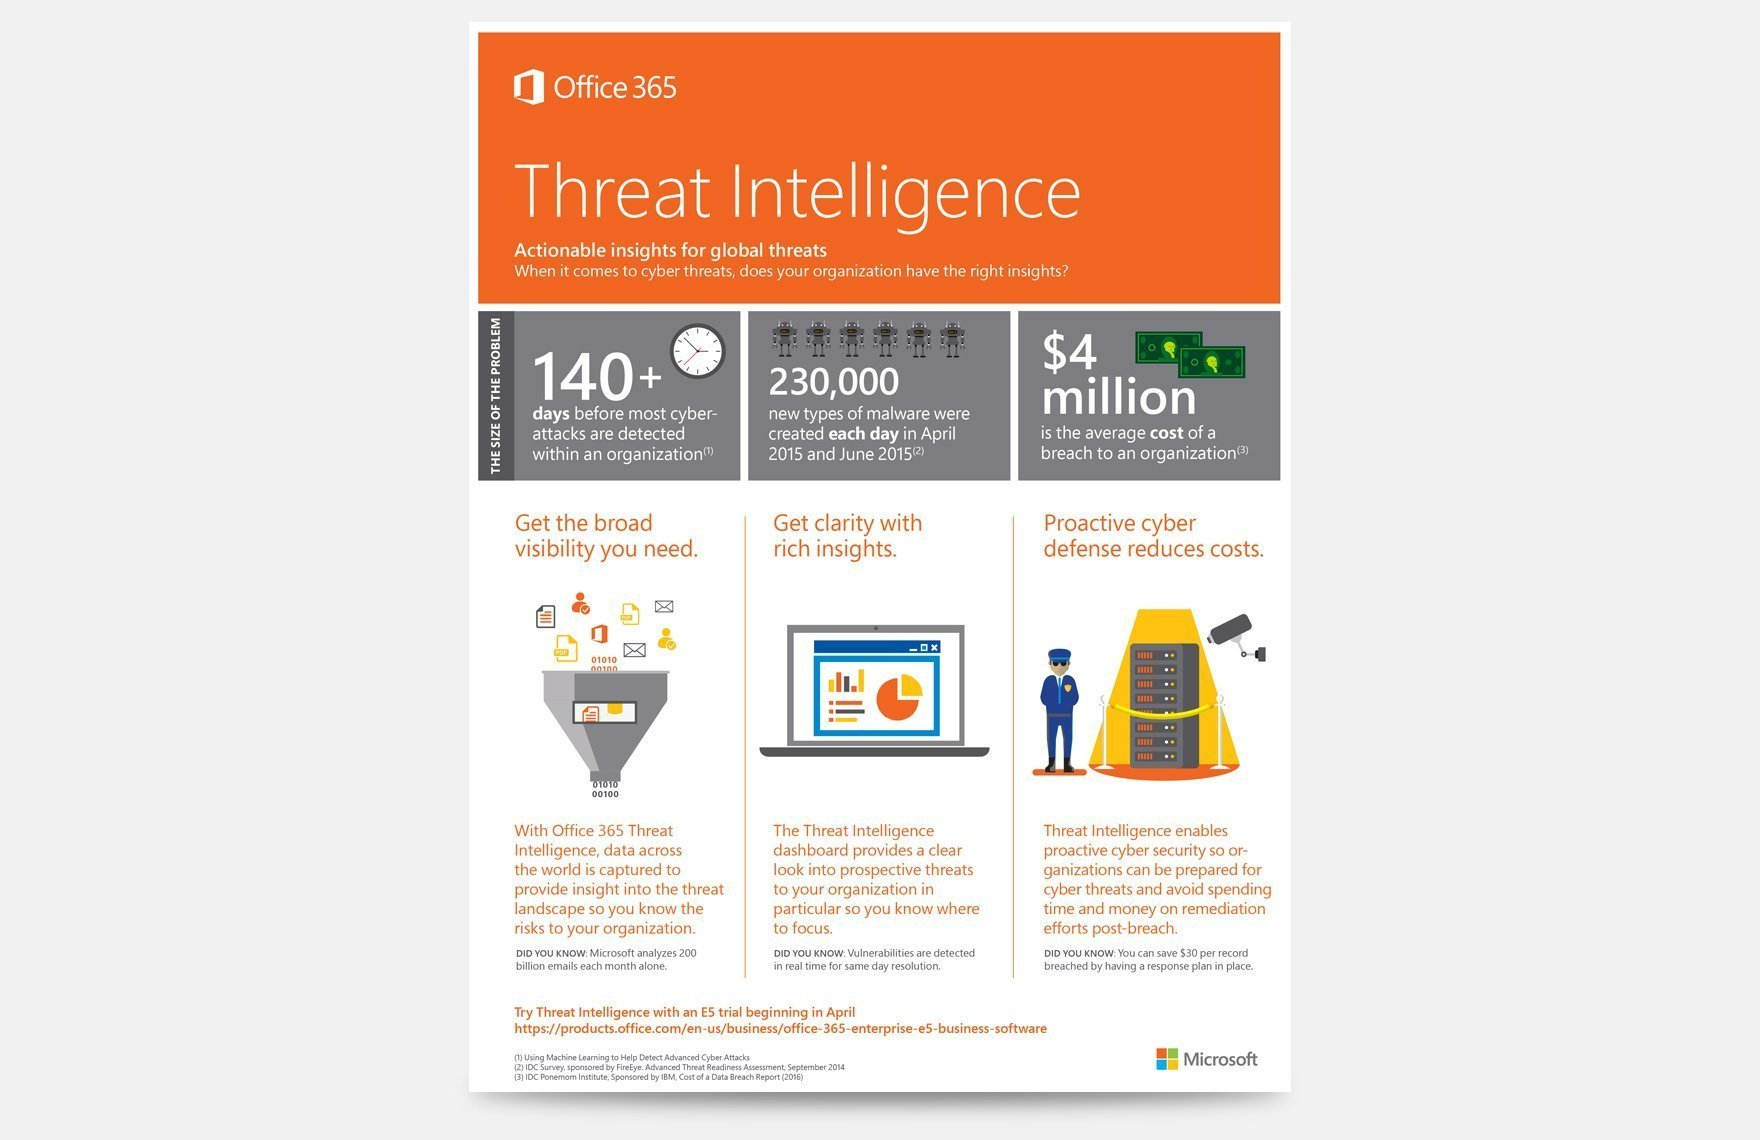 Office 365 print collateral for threat intelligence.